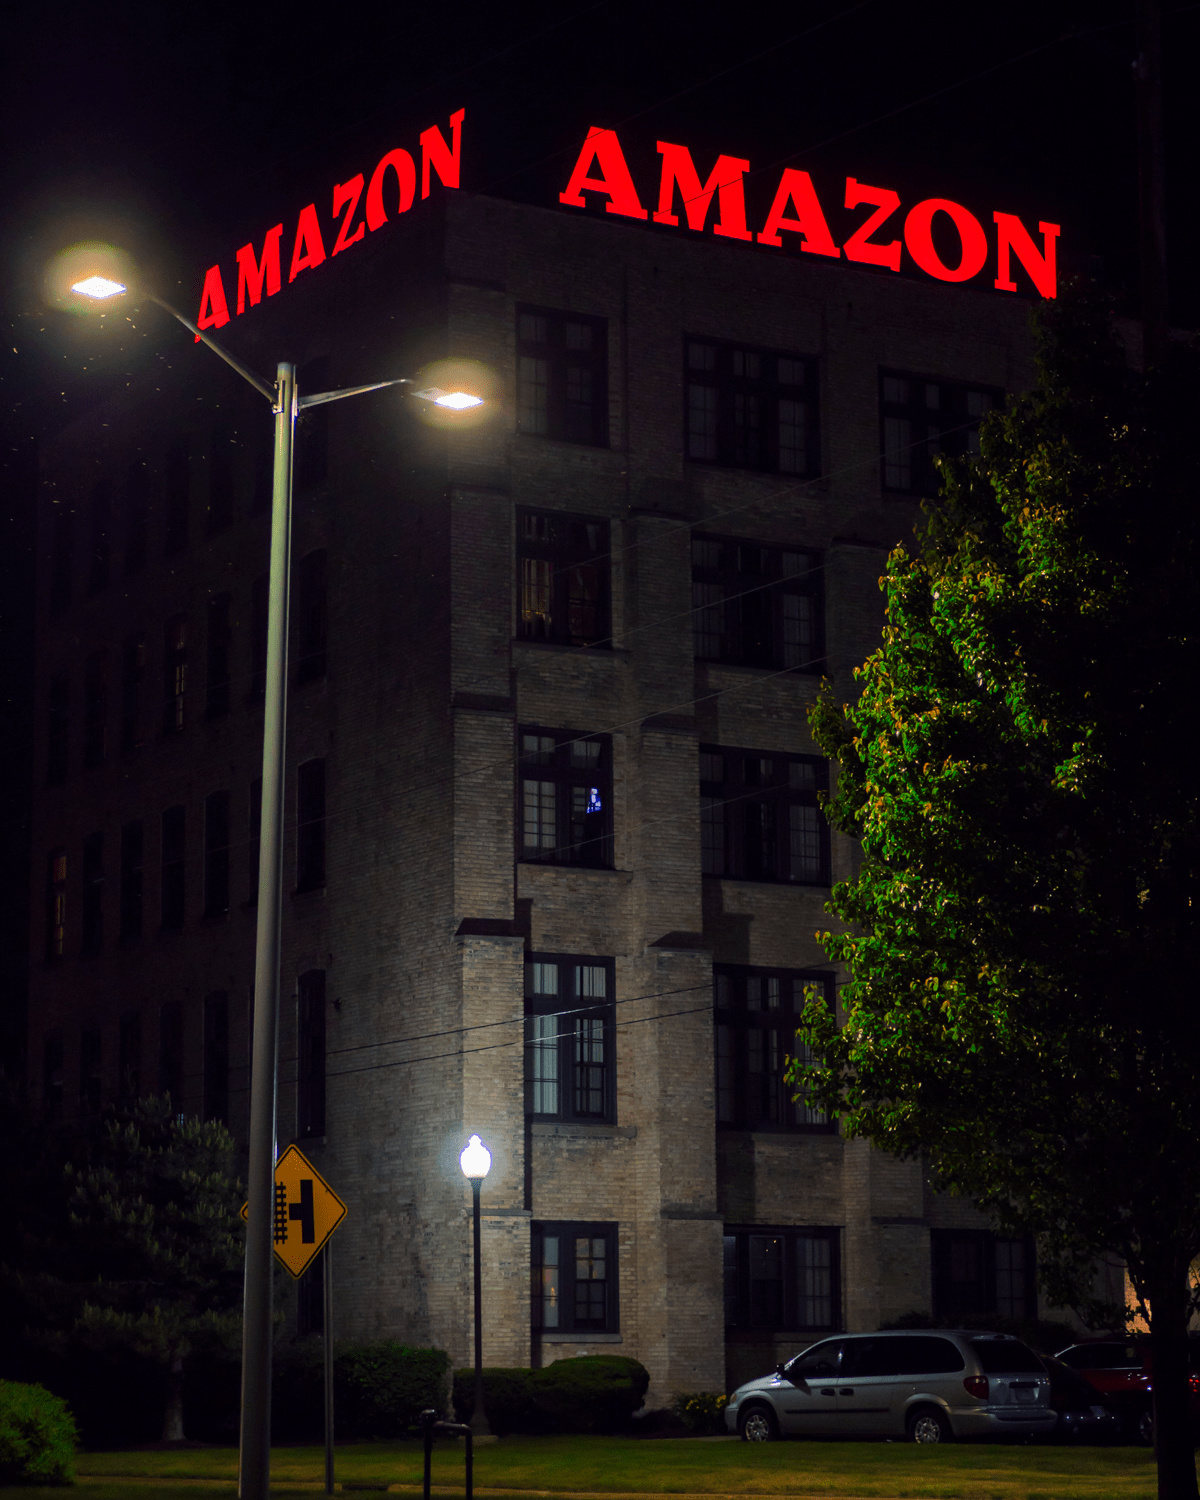 Amazon Rooftop Backlit Channel Lettering